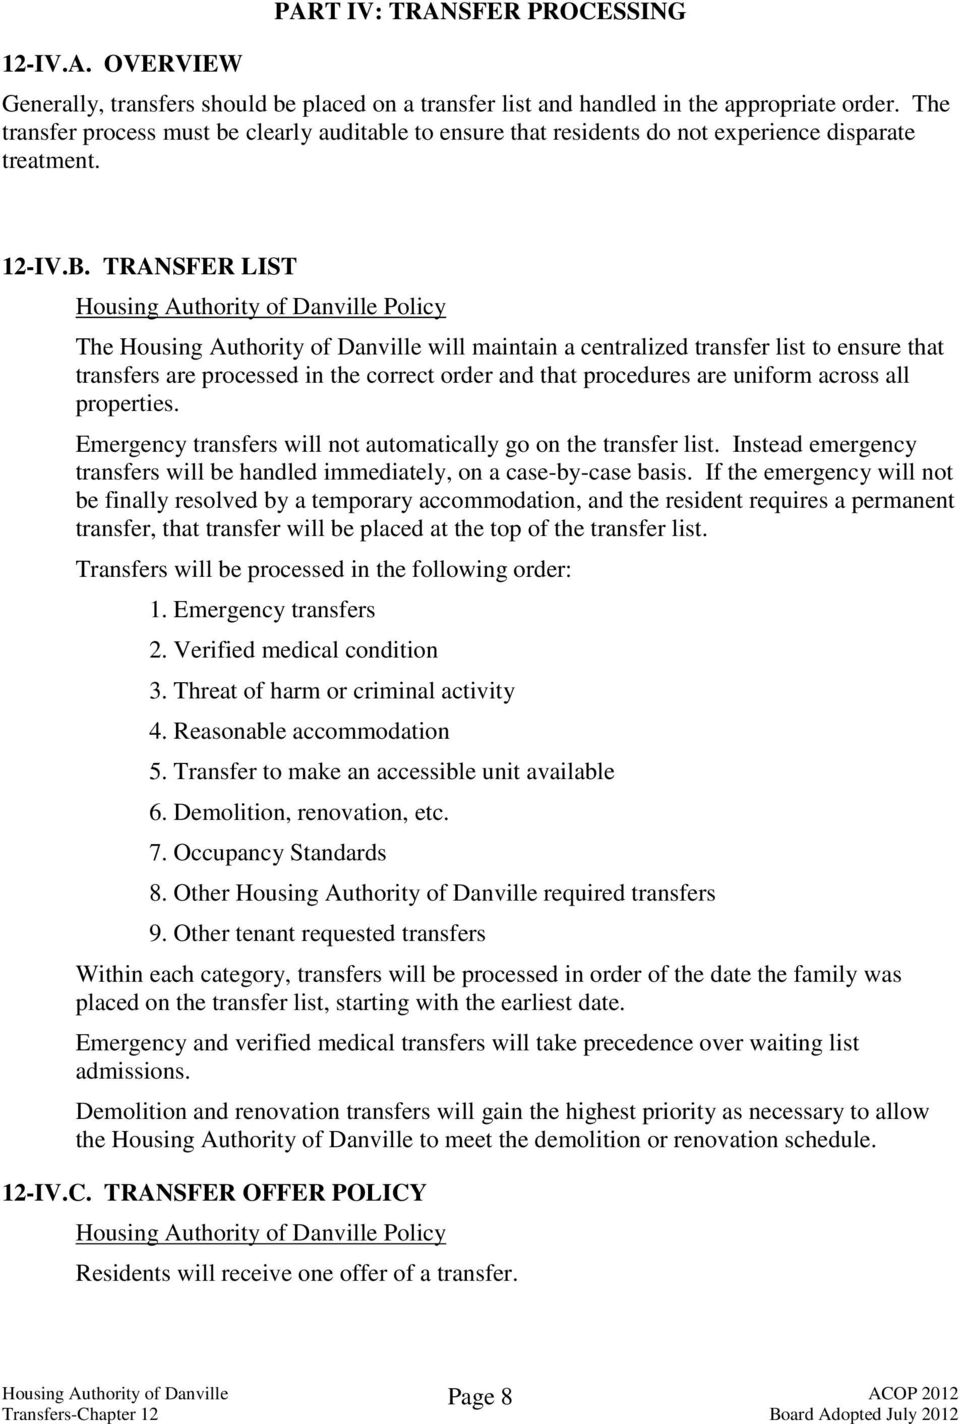 TRANSFER LIST The Housing Authority of Danville will maintain a centralized transfer list to ensure that transfers are processed in the correct order and that procedures are uniform across all